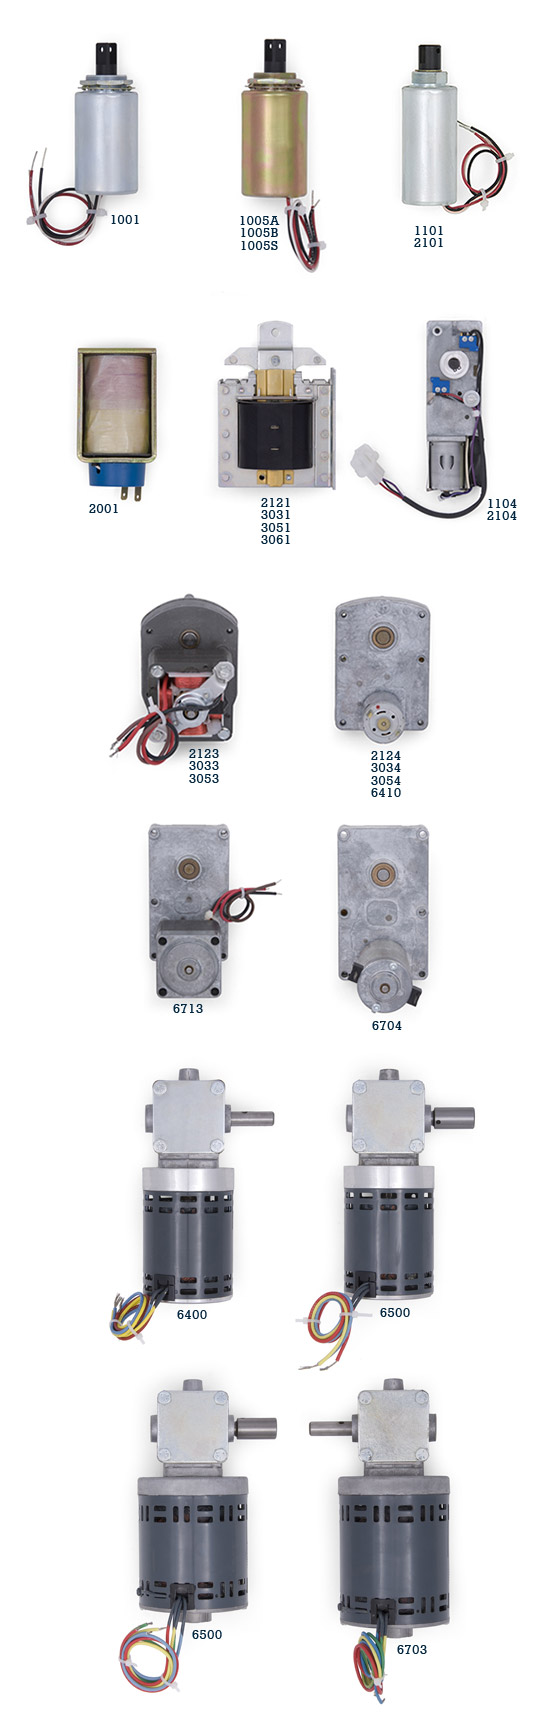 Adtec Motors and Solenoids